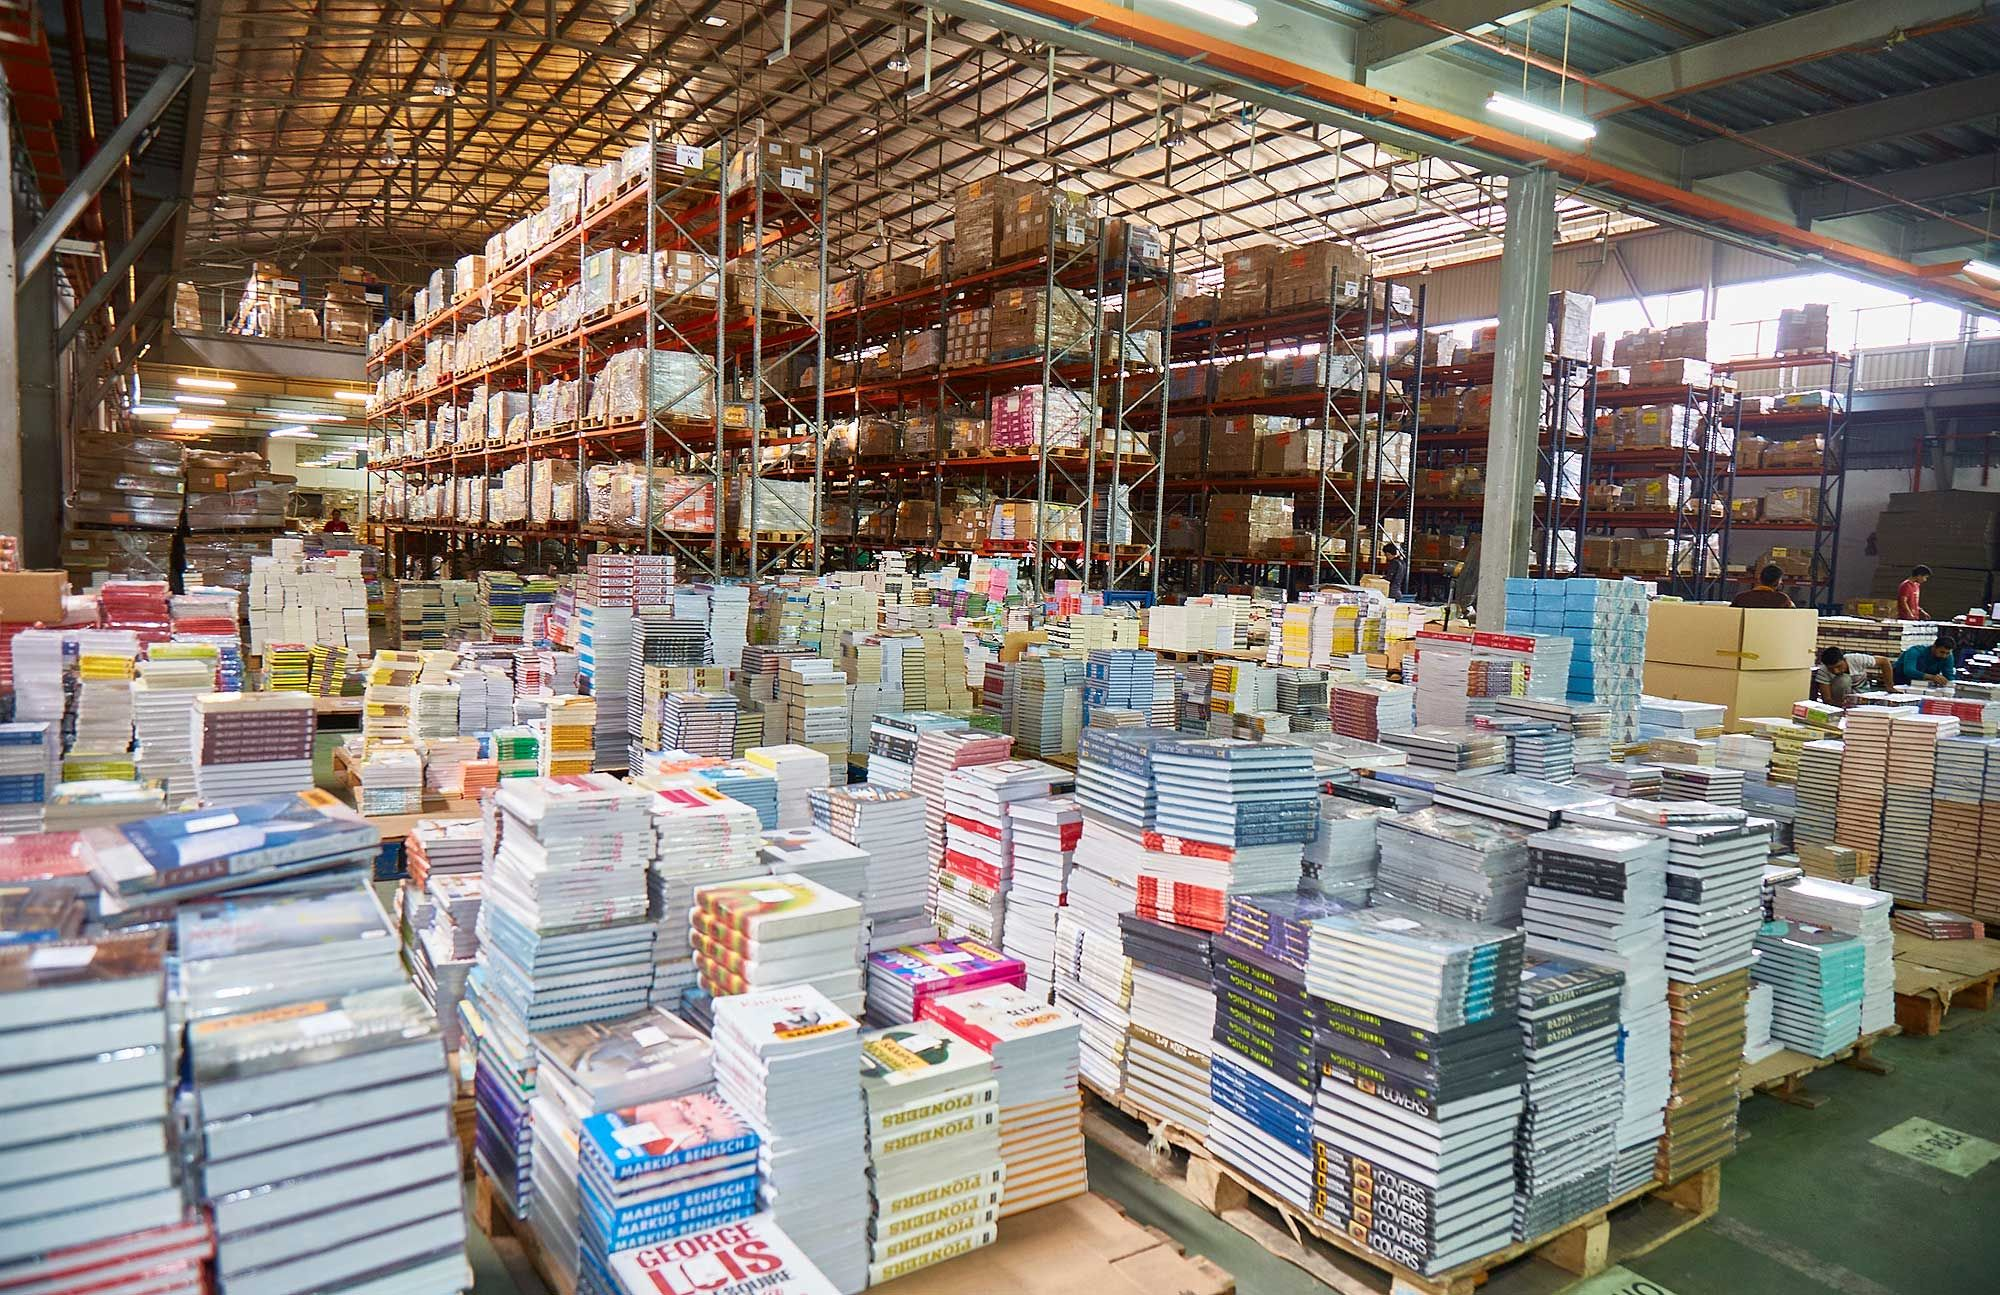 Book Xcess and the Big Bad Wolf Book Sale's sprawling storage facility. Photo: CH Lei / Malaysia Tatler.